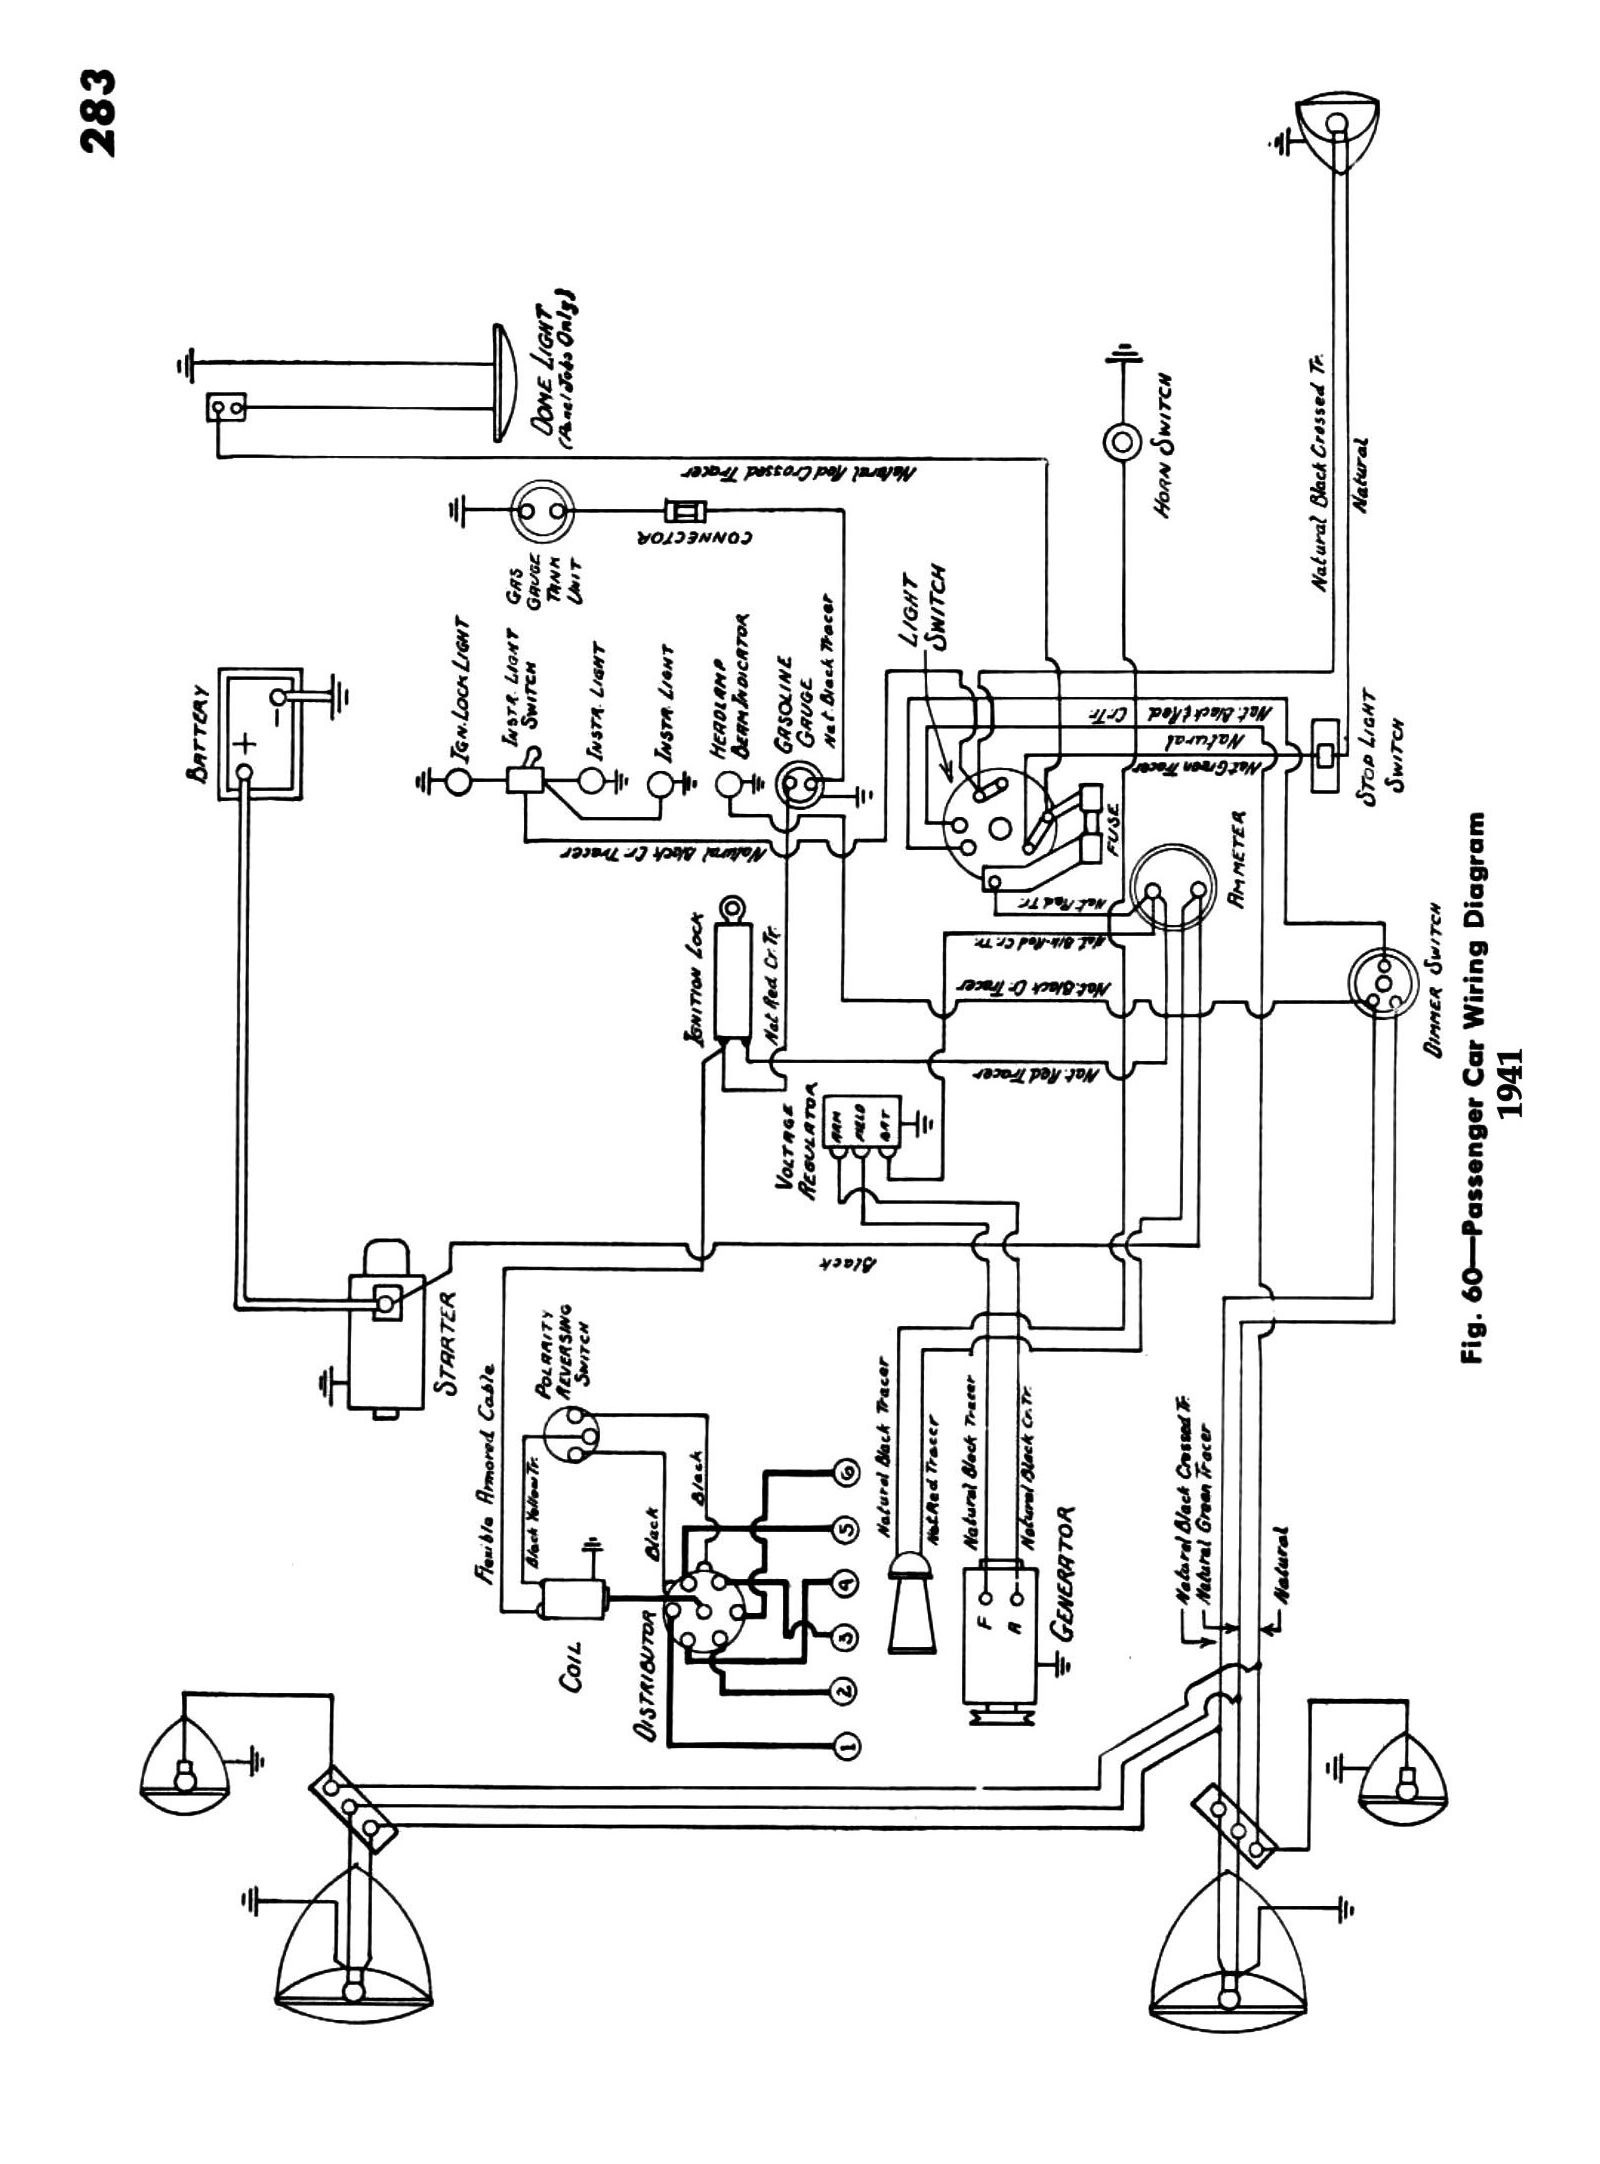 41csm283 chevy wiring diagrams international truck wiring diagram at aneh.co